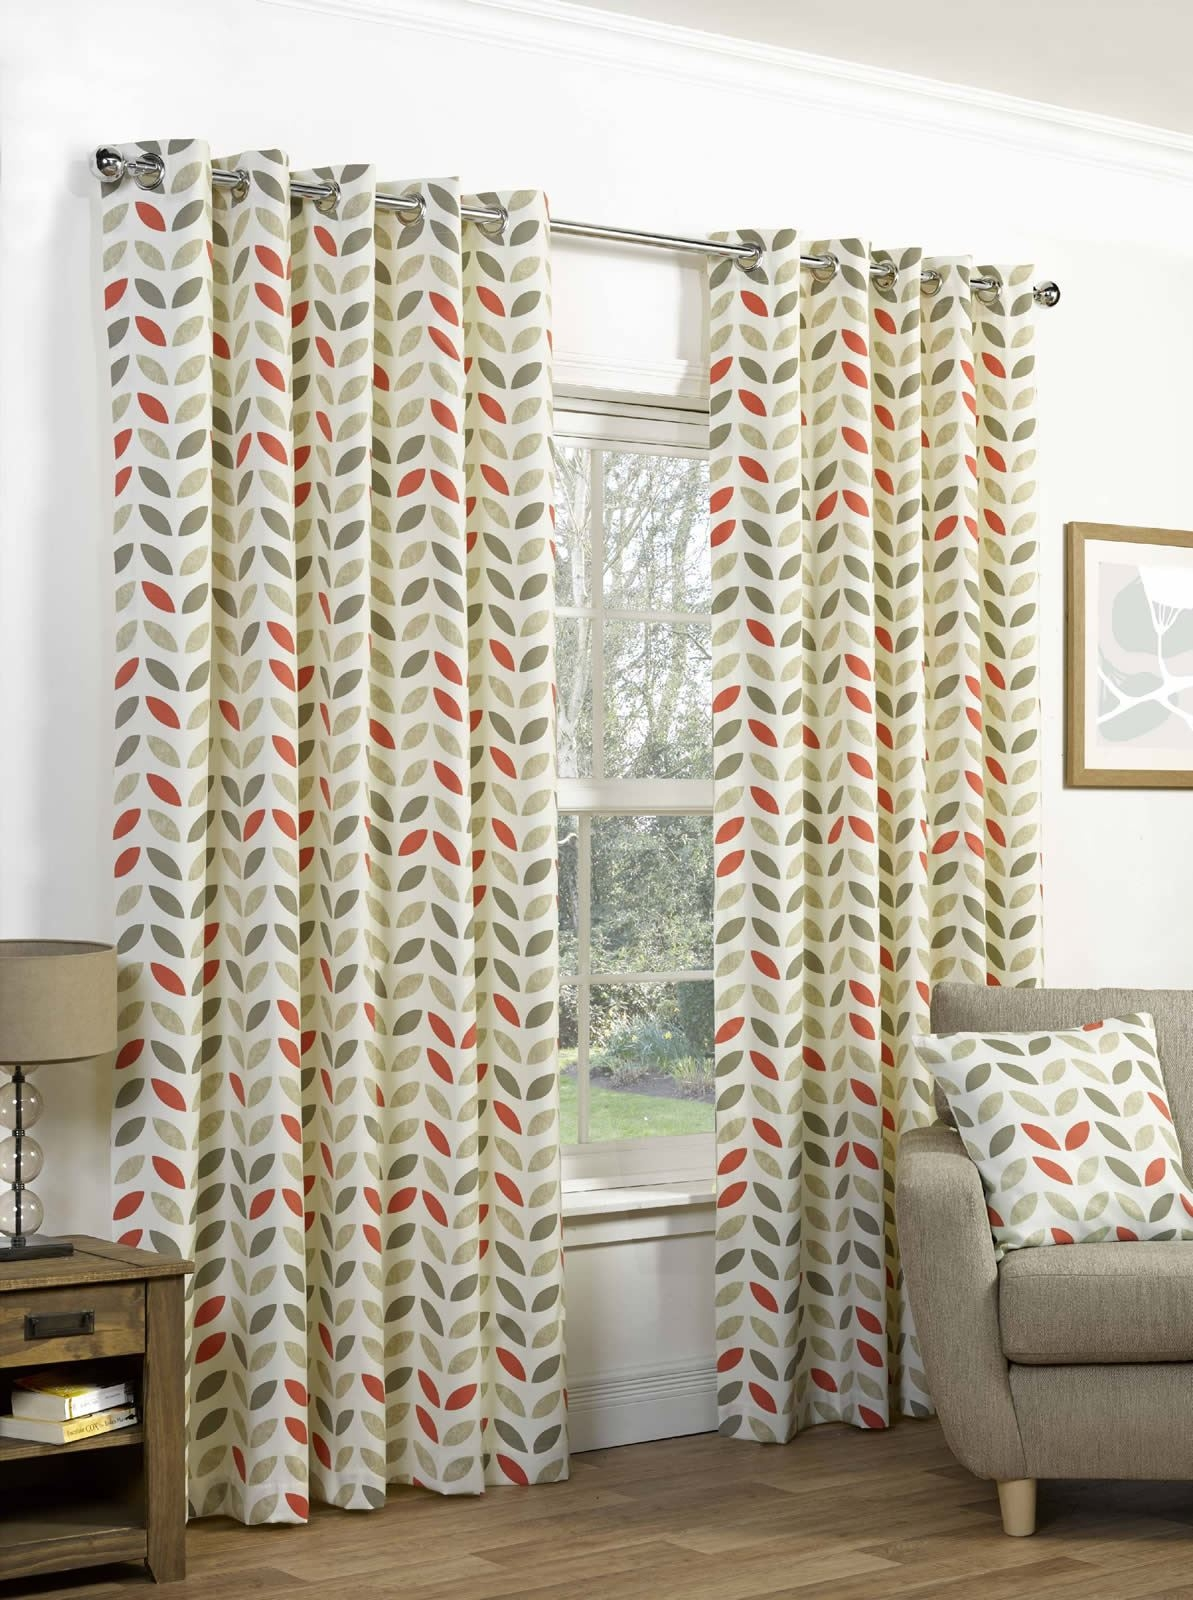 Neo Geometric Modern Leaf Print Lined Eyelet Curtains Ready Made With Regard To Cotton Eyelet Curtains (View 8 of 15)